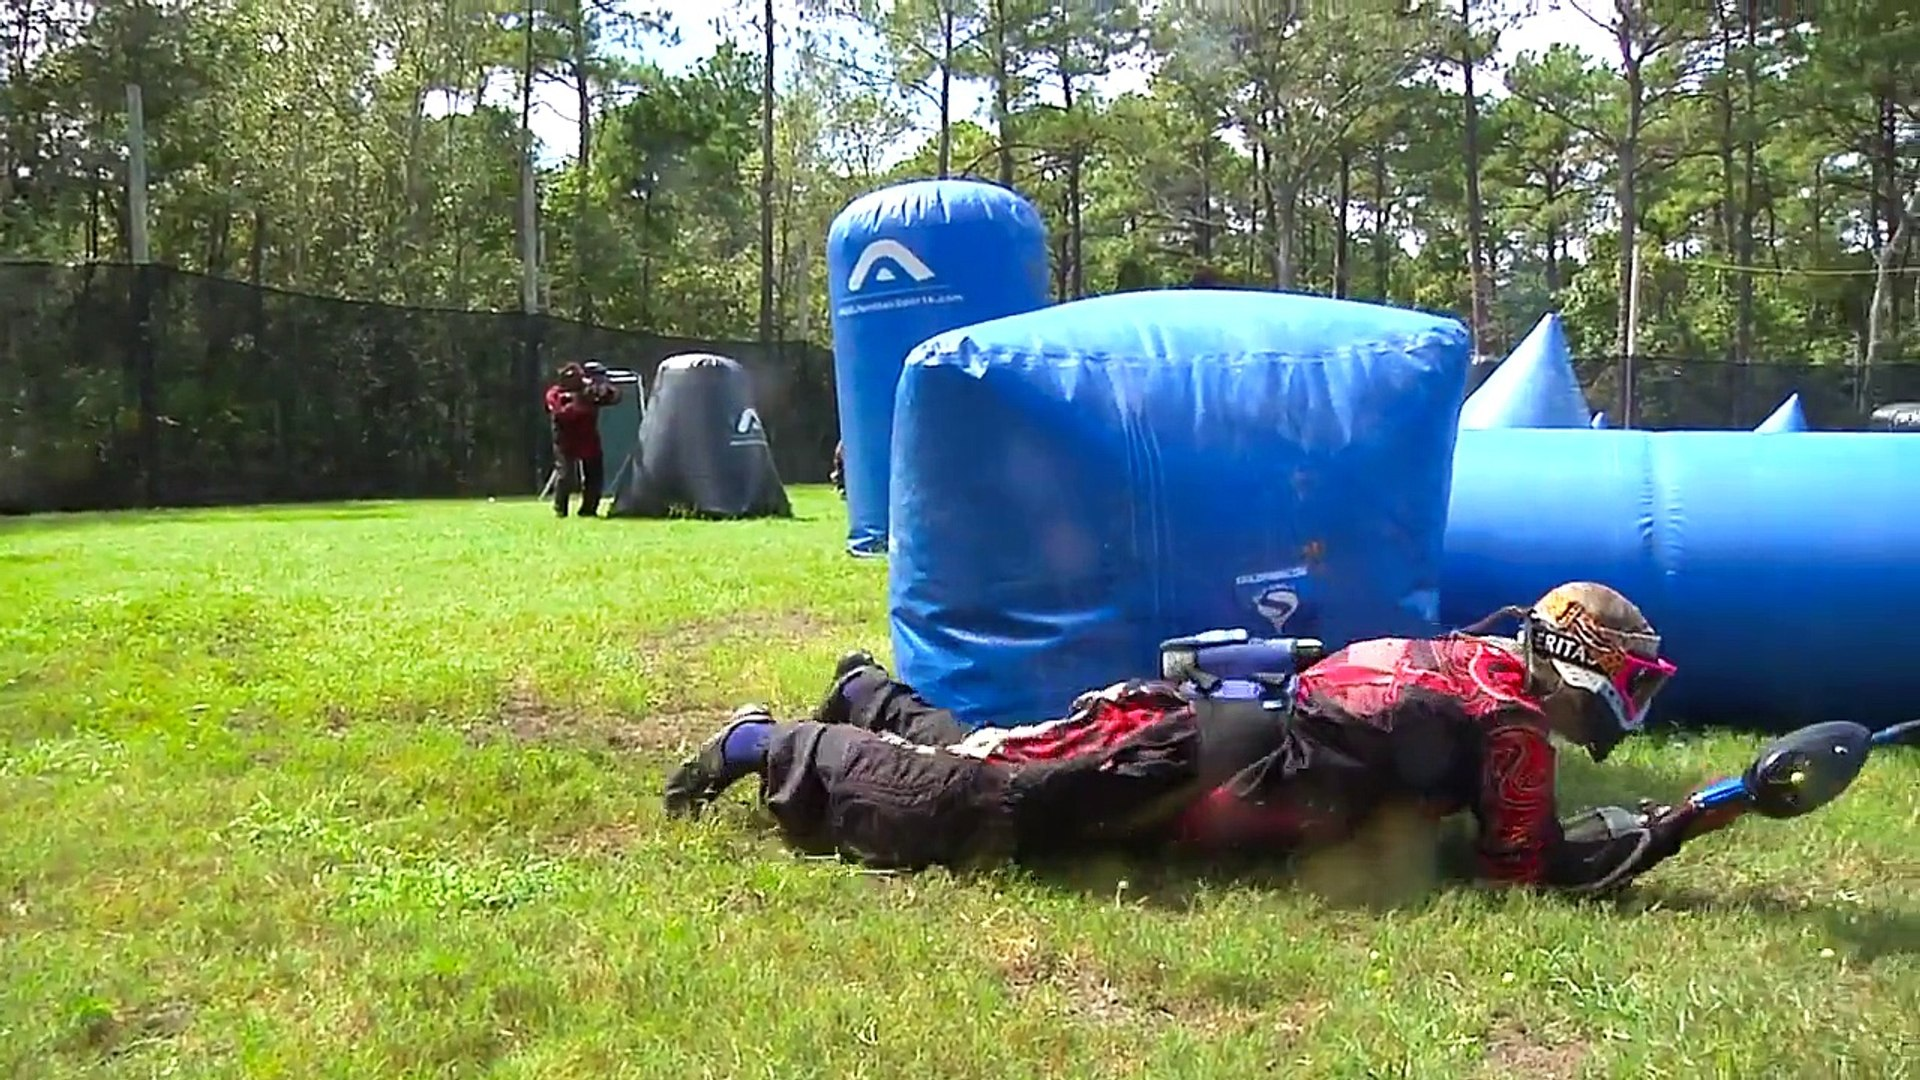 Hd Paintball In Jacksonville Florida Xtreme Paintball Of Jax Video Dailymotion